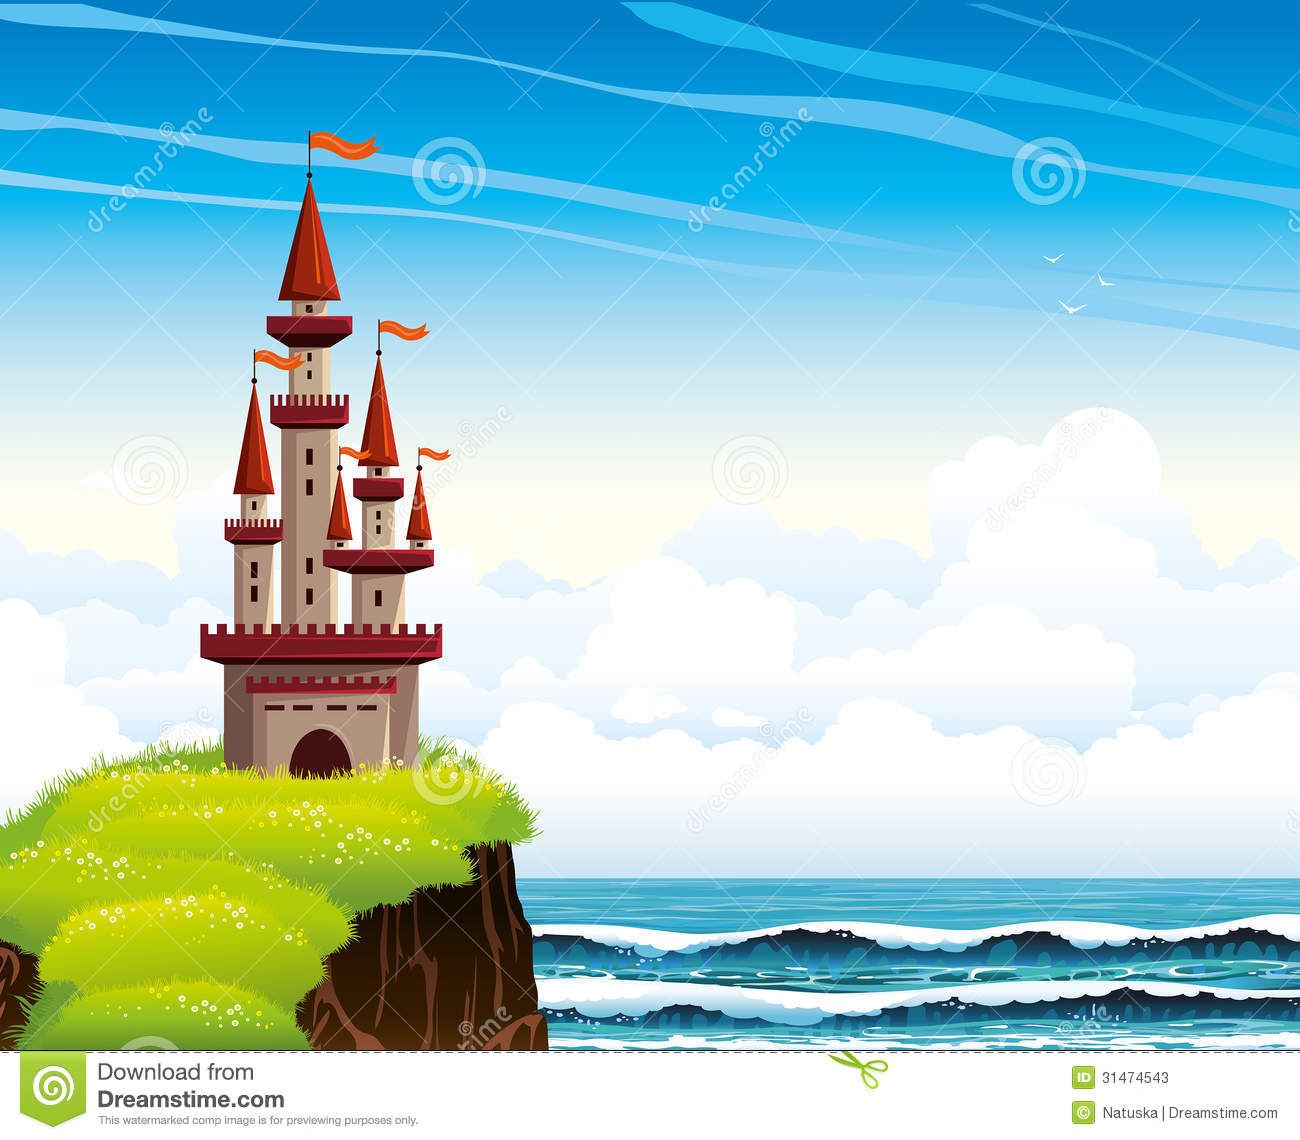 Cartoon Castle Standing On A Cliff On A Lue Sea And Sky. Stock Photos ...